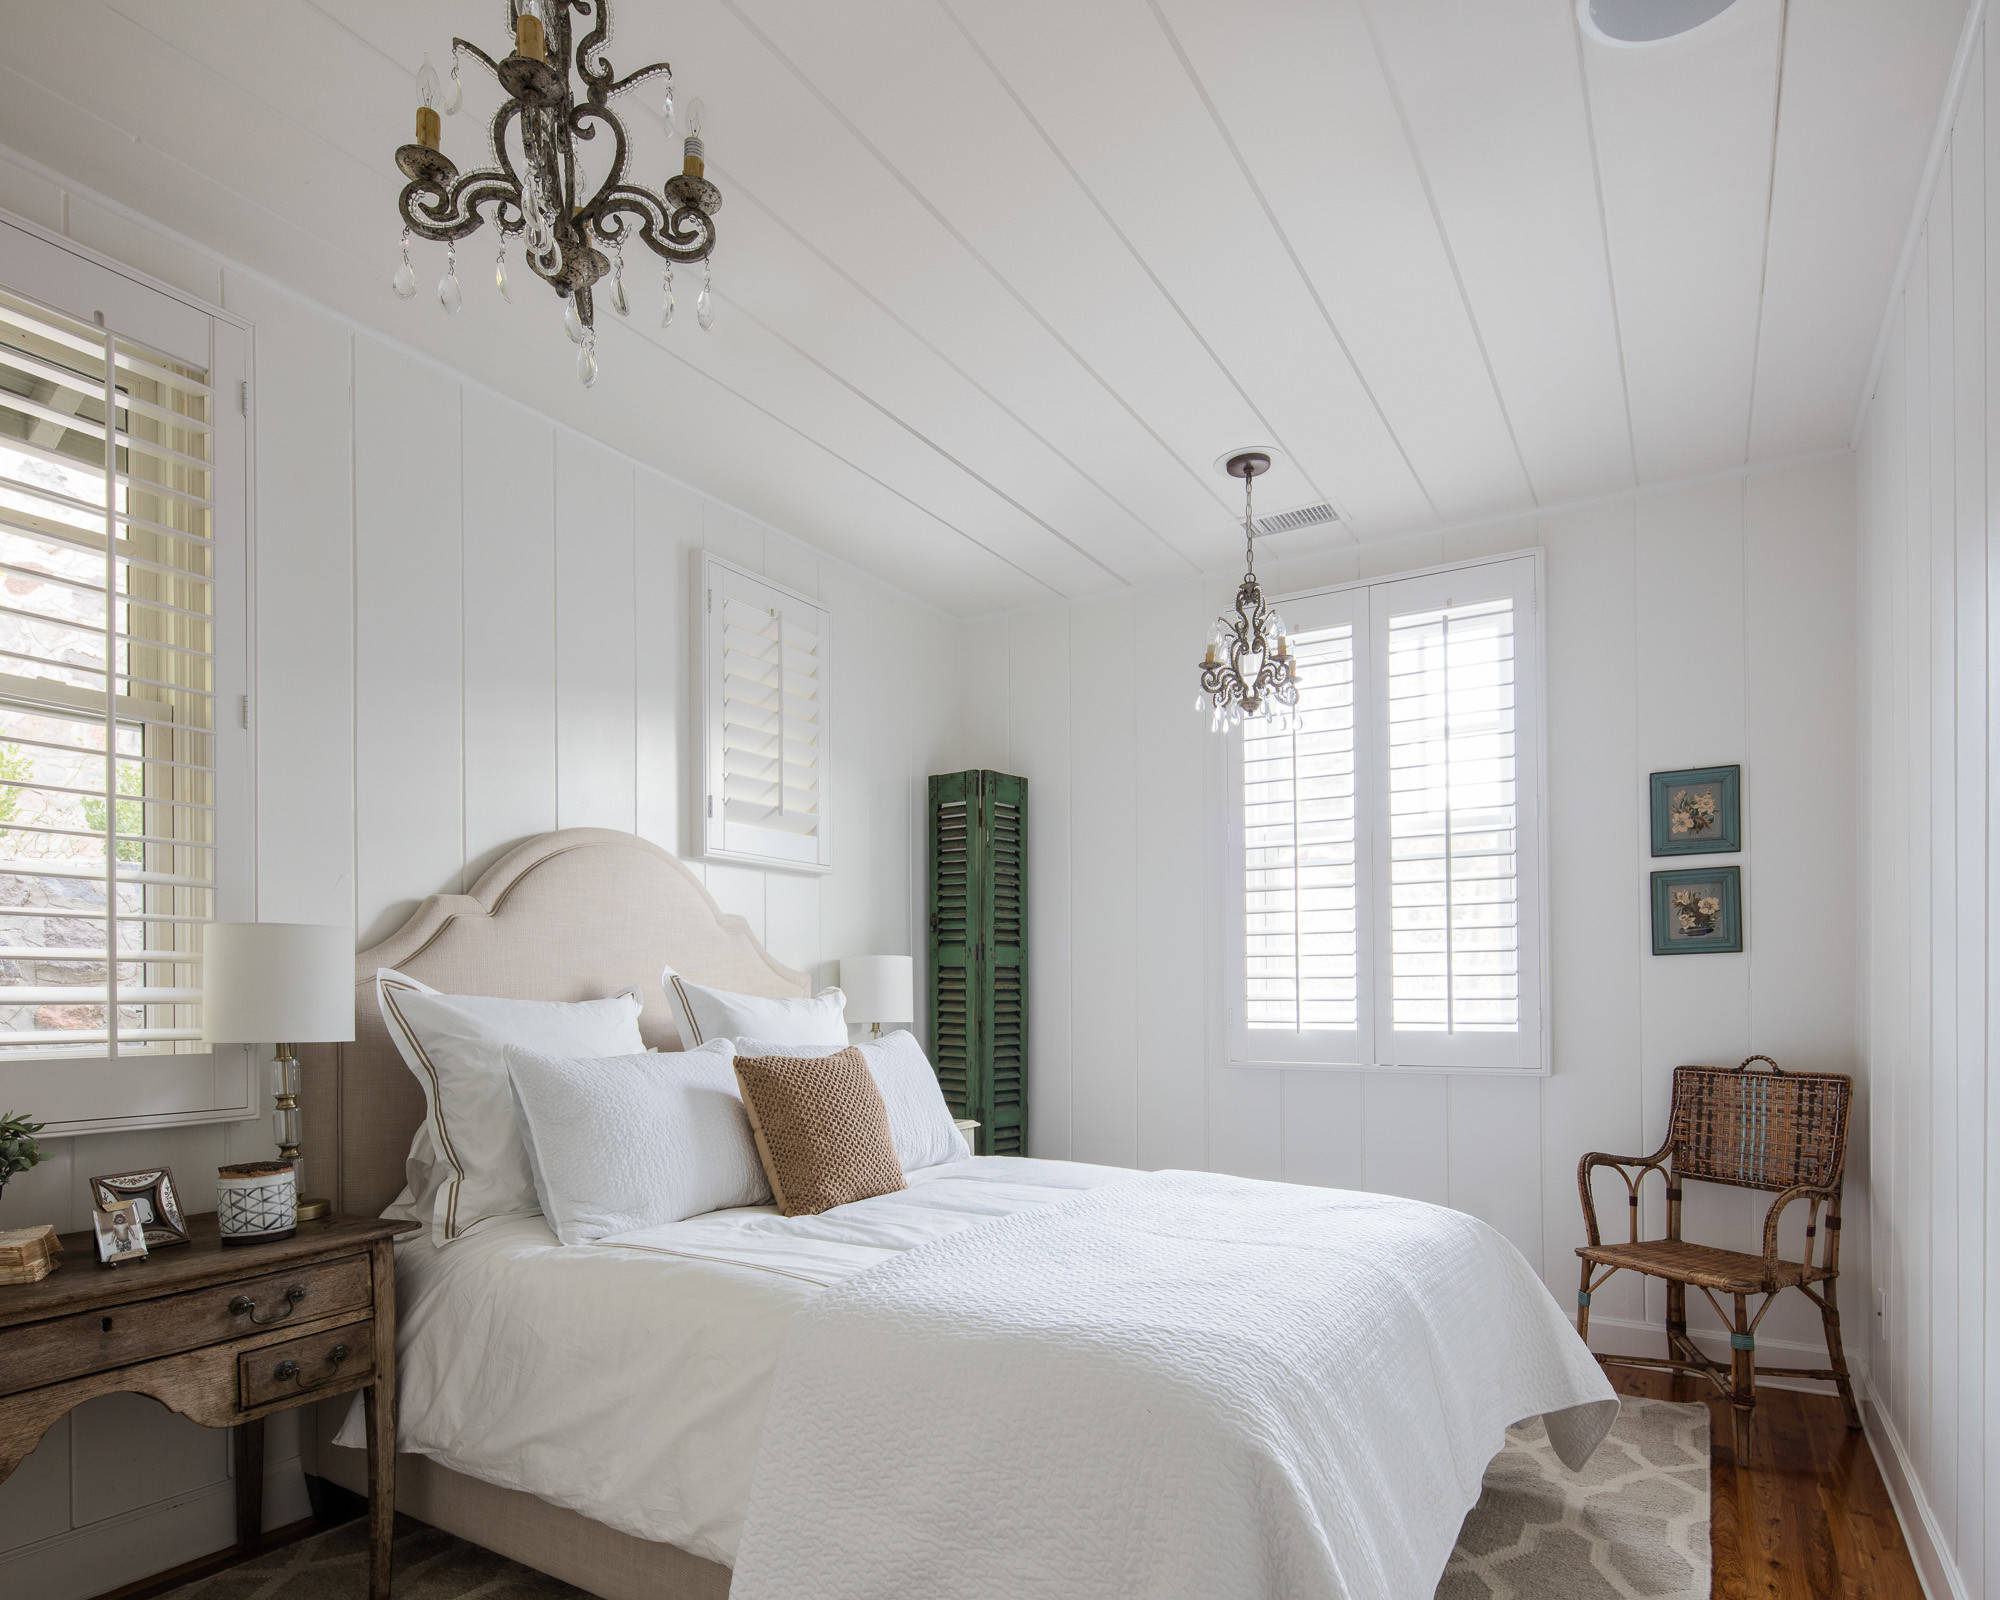 12 Beautiful French Country Bedroom Pictures & Ideas - January